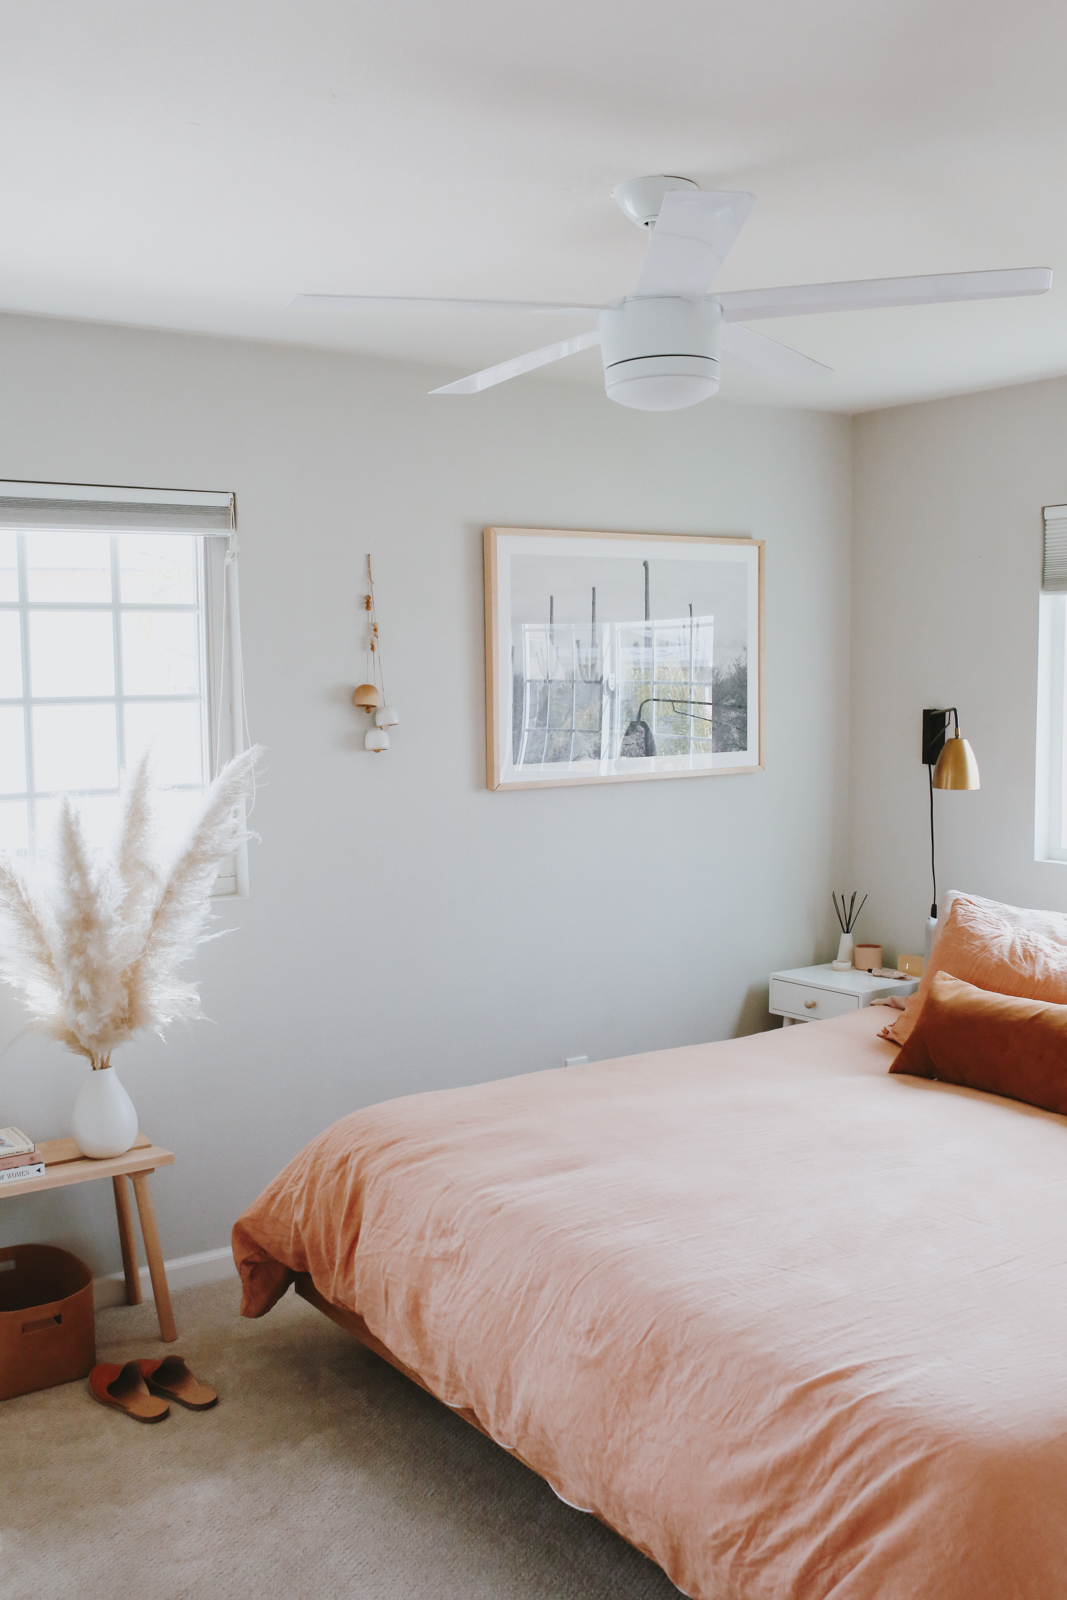 vanessas bedroom - after - almost makes perfect